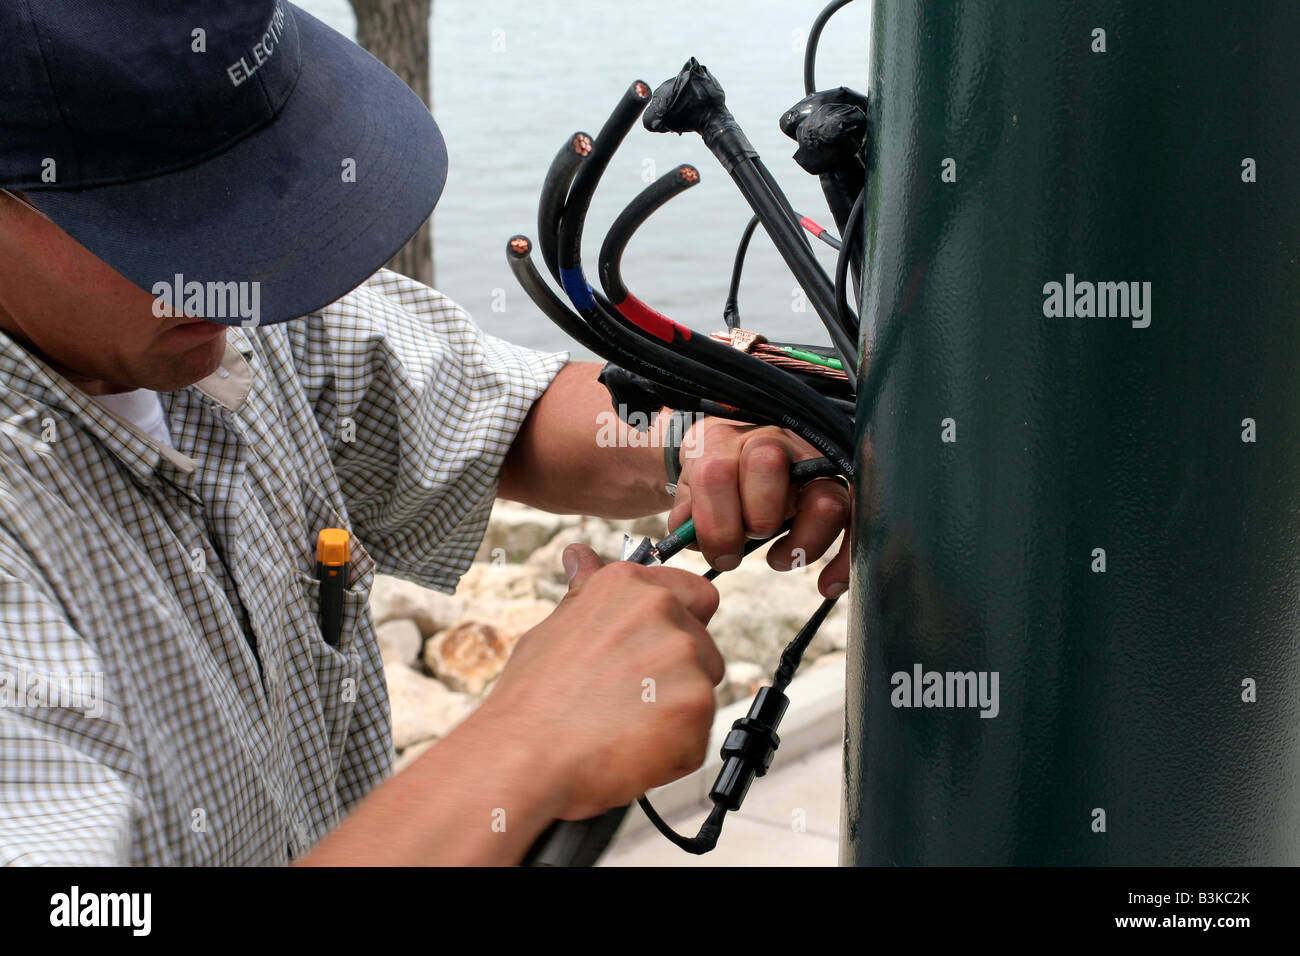 Splicing Stockfotos & Splicing Bilder - Alamy